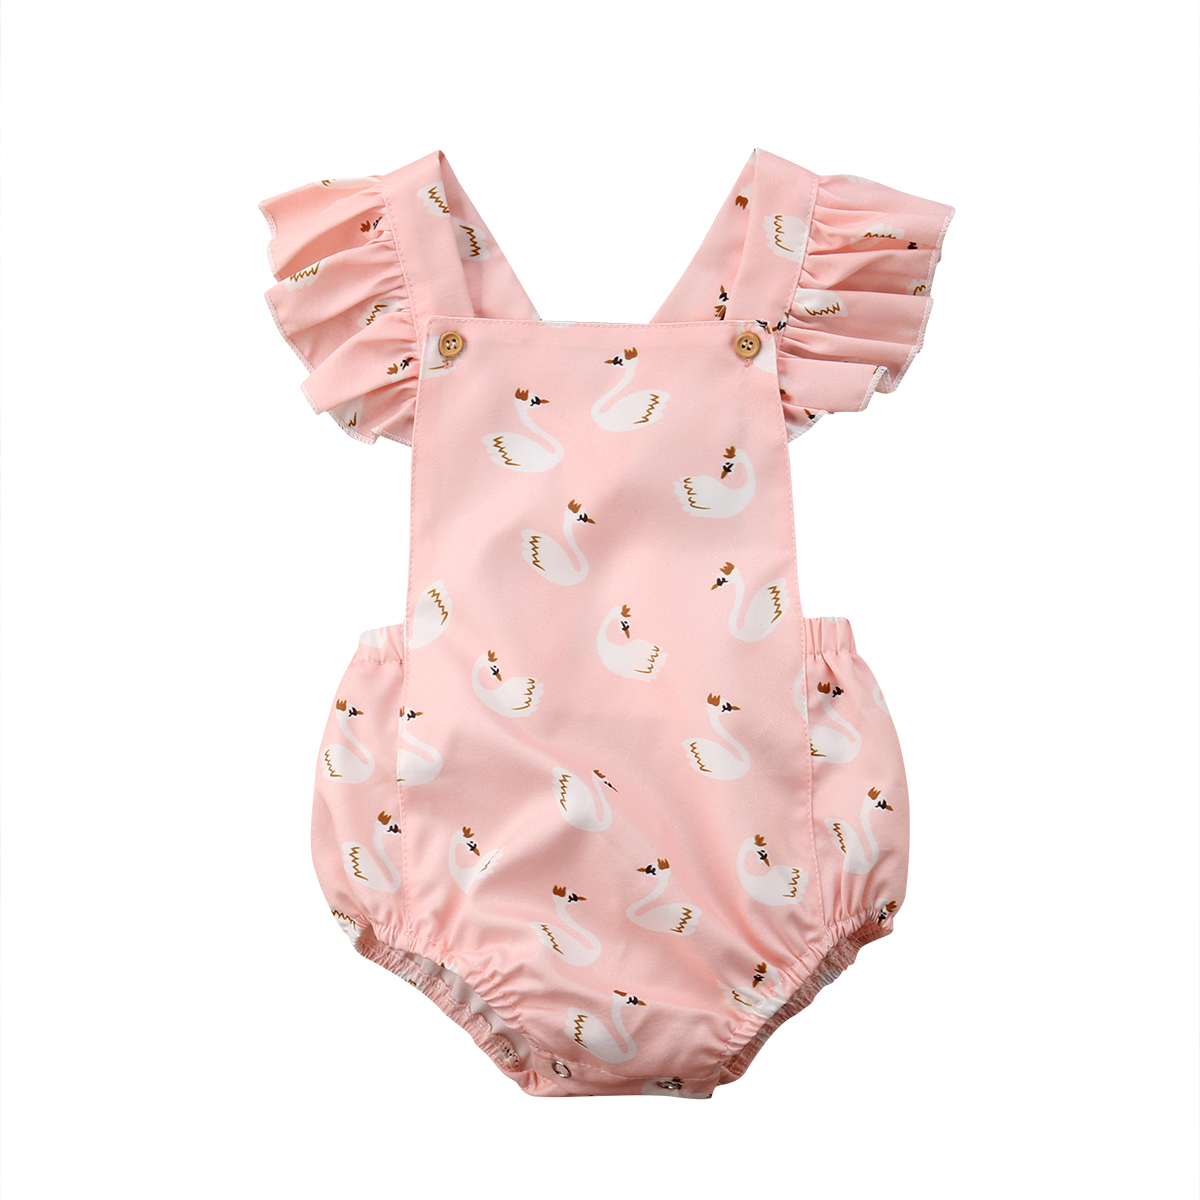 0-3Y Toddler Kids Baby Girls Clothes Summer Newborn Baby Girl Swan Romper Off Shoulder Jumpsuit  Clothes Outfit